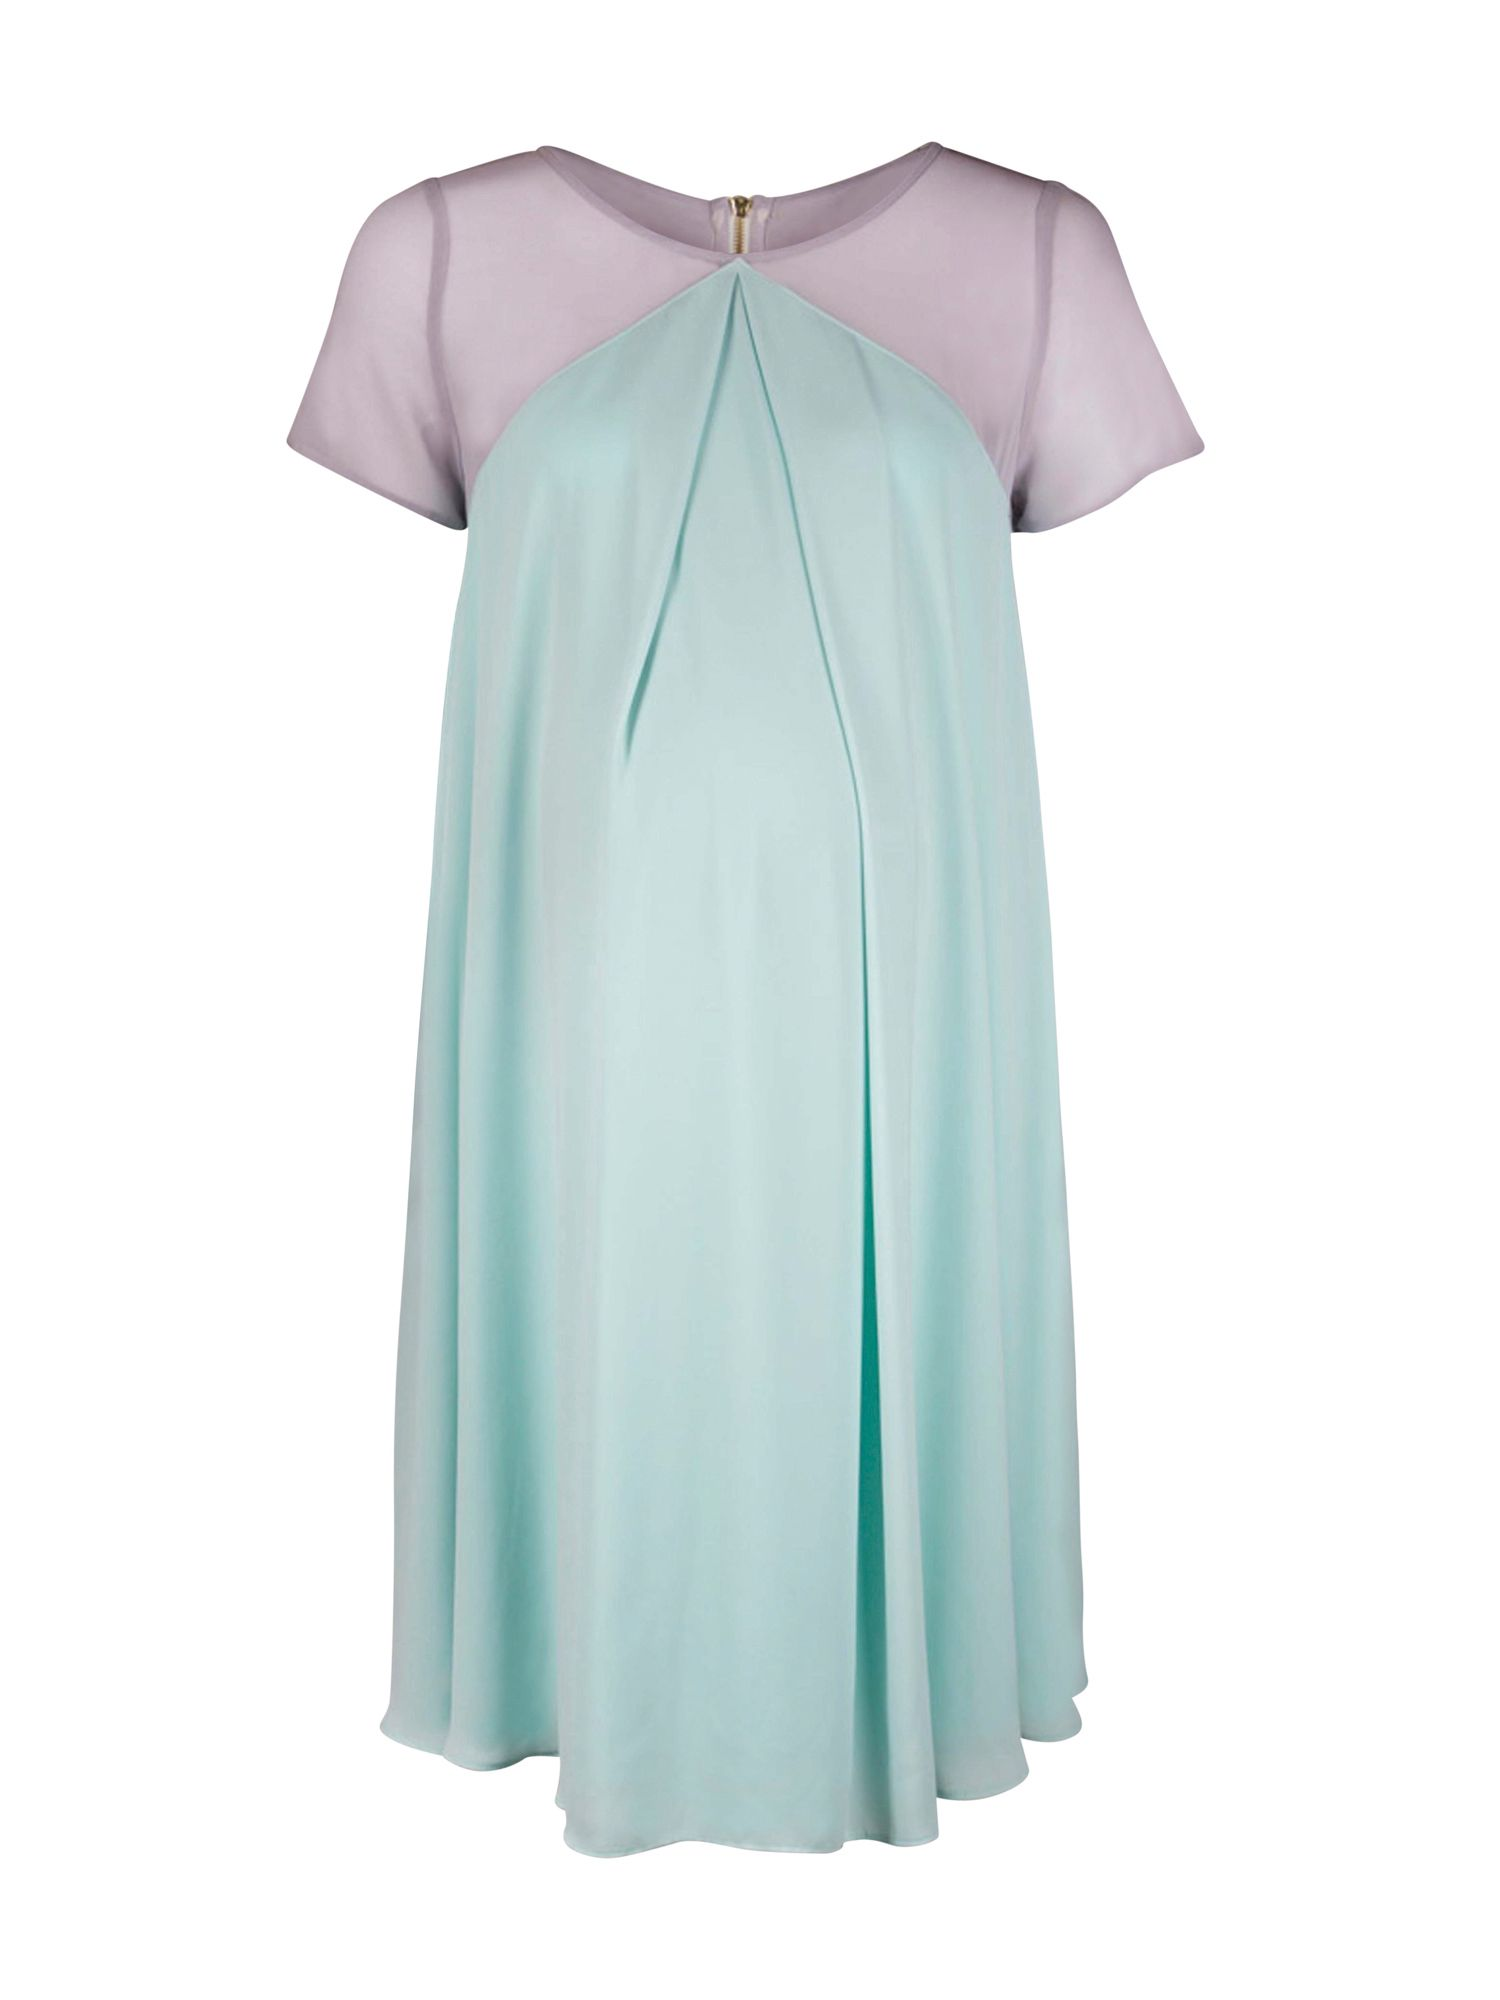 Vintage Maternity Clothing Styles 1910-1960 Rock-a-Bye Rosie Demi maternity swing dress £75.00 AT vintagedancer.com